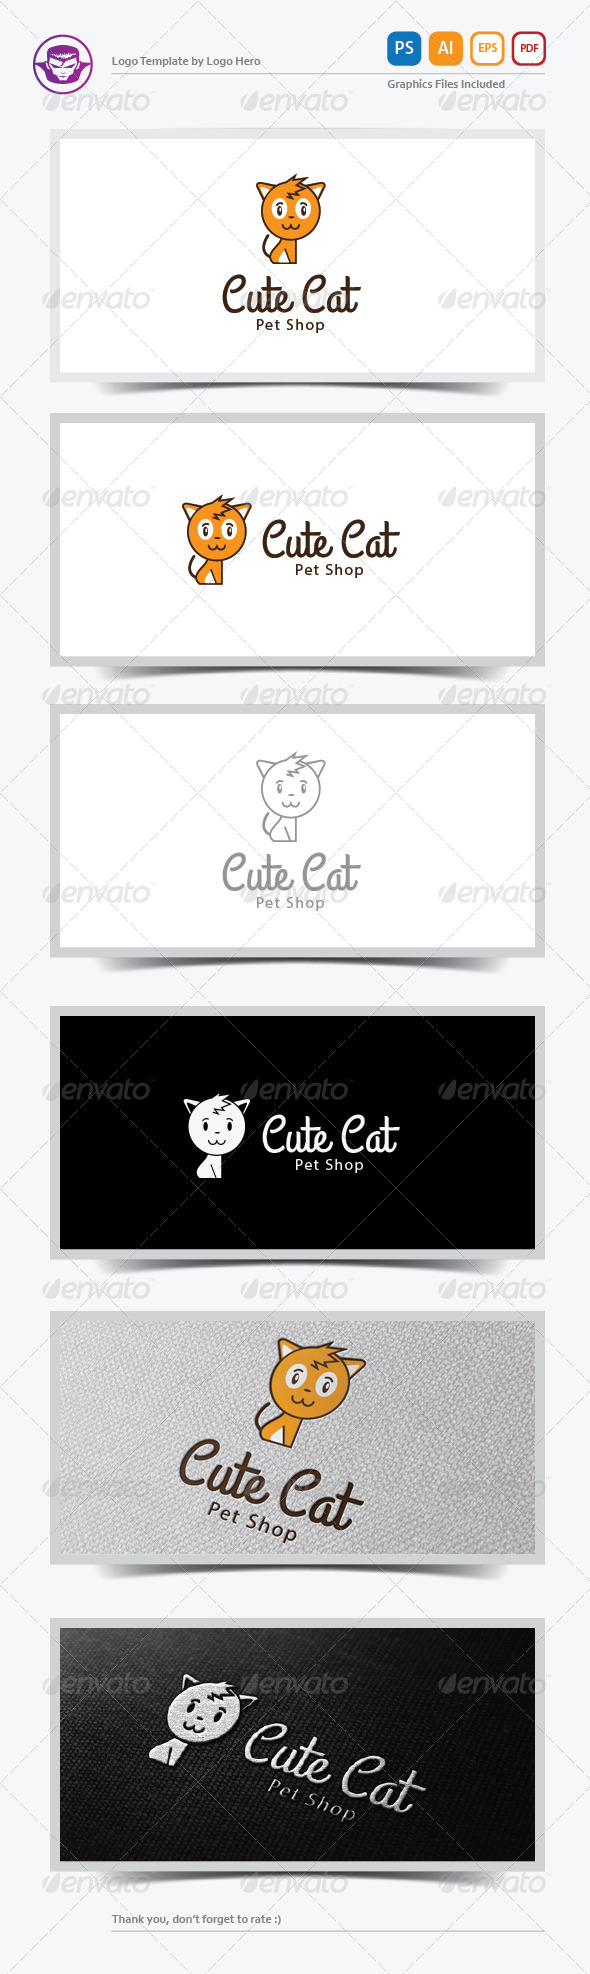 GraphicRiver Cute Cat Logo Template 6390746